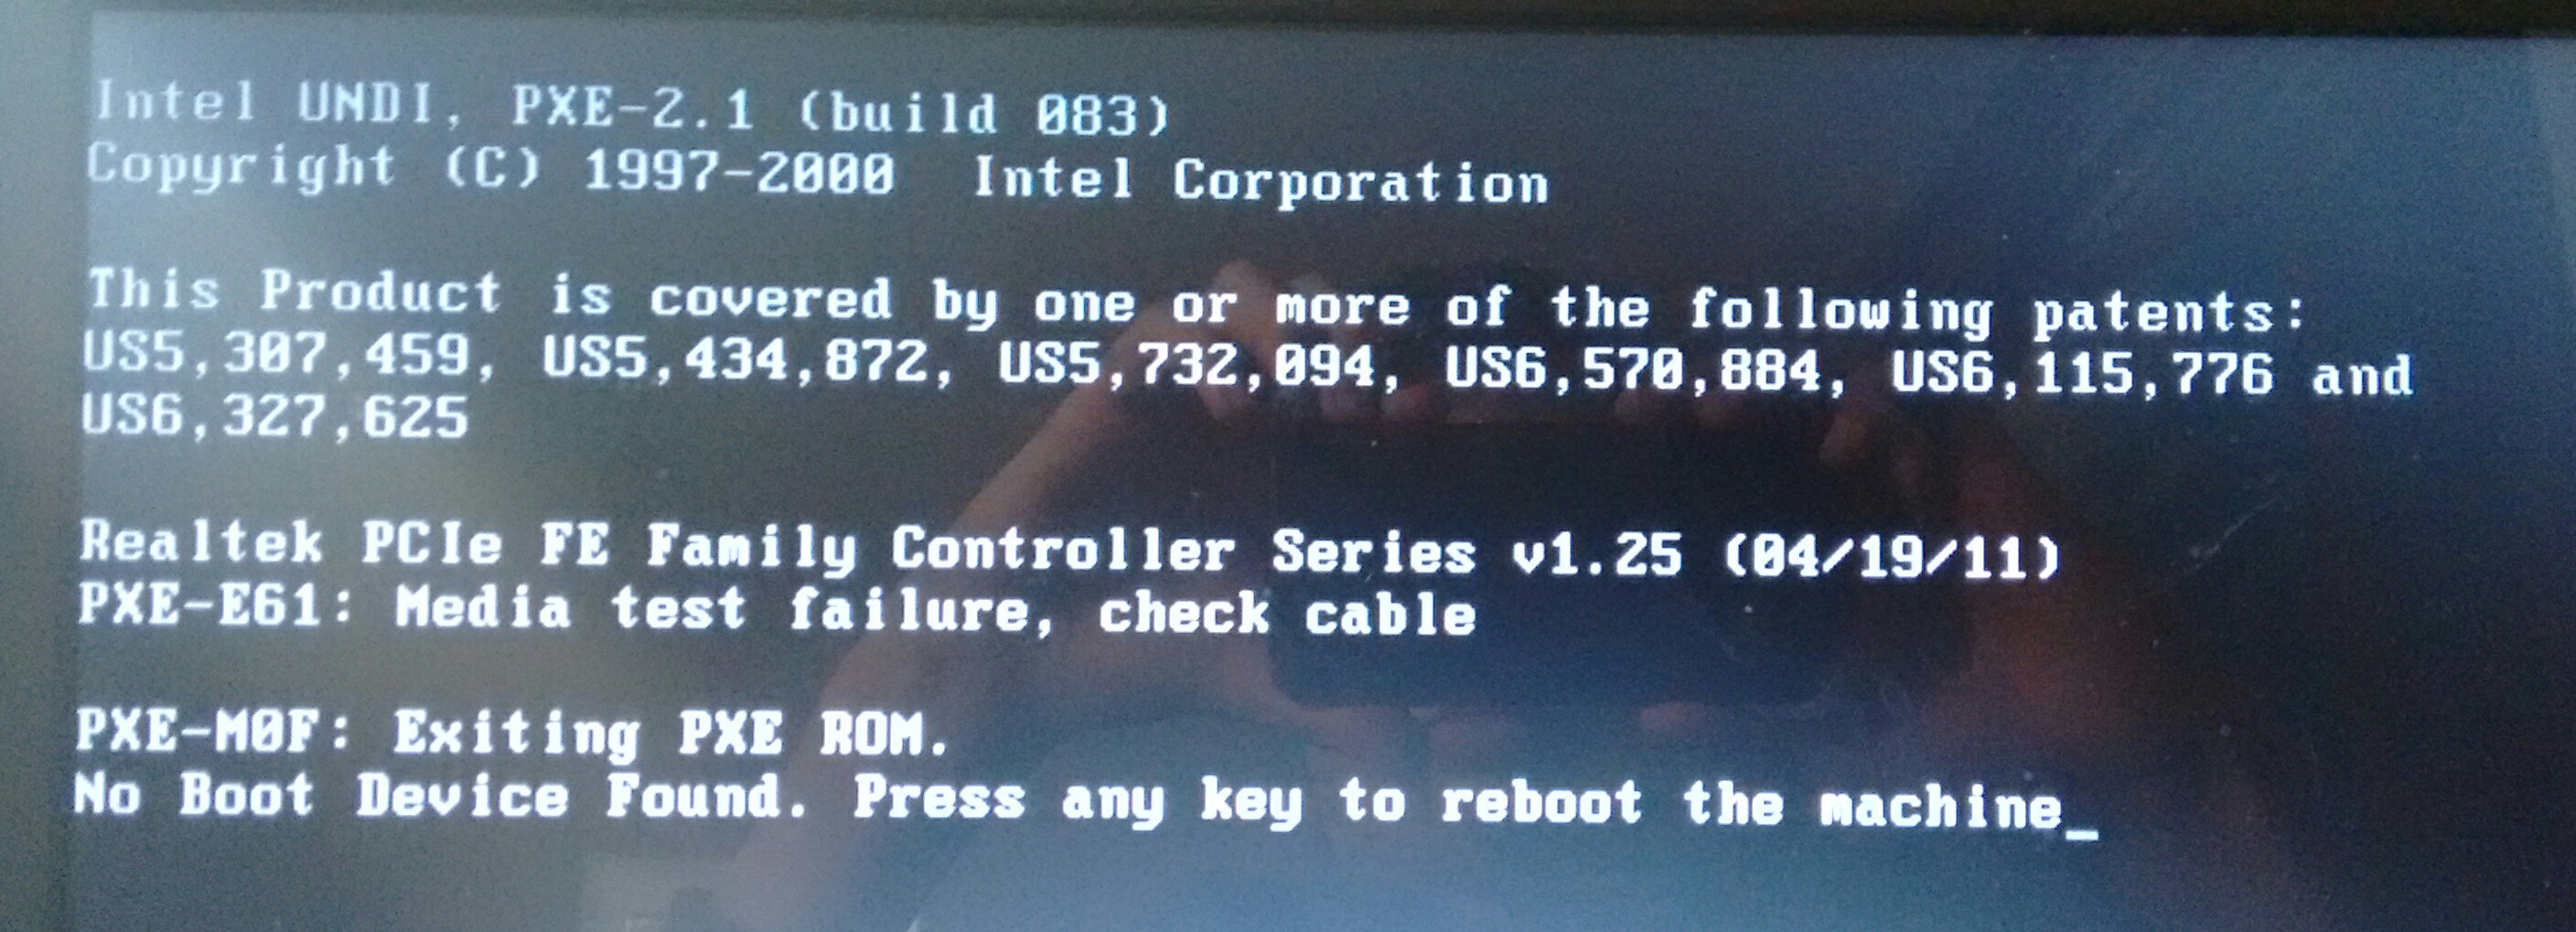 dell inspirion no boot device found windows 8 1